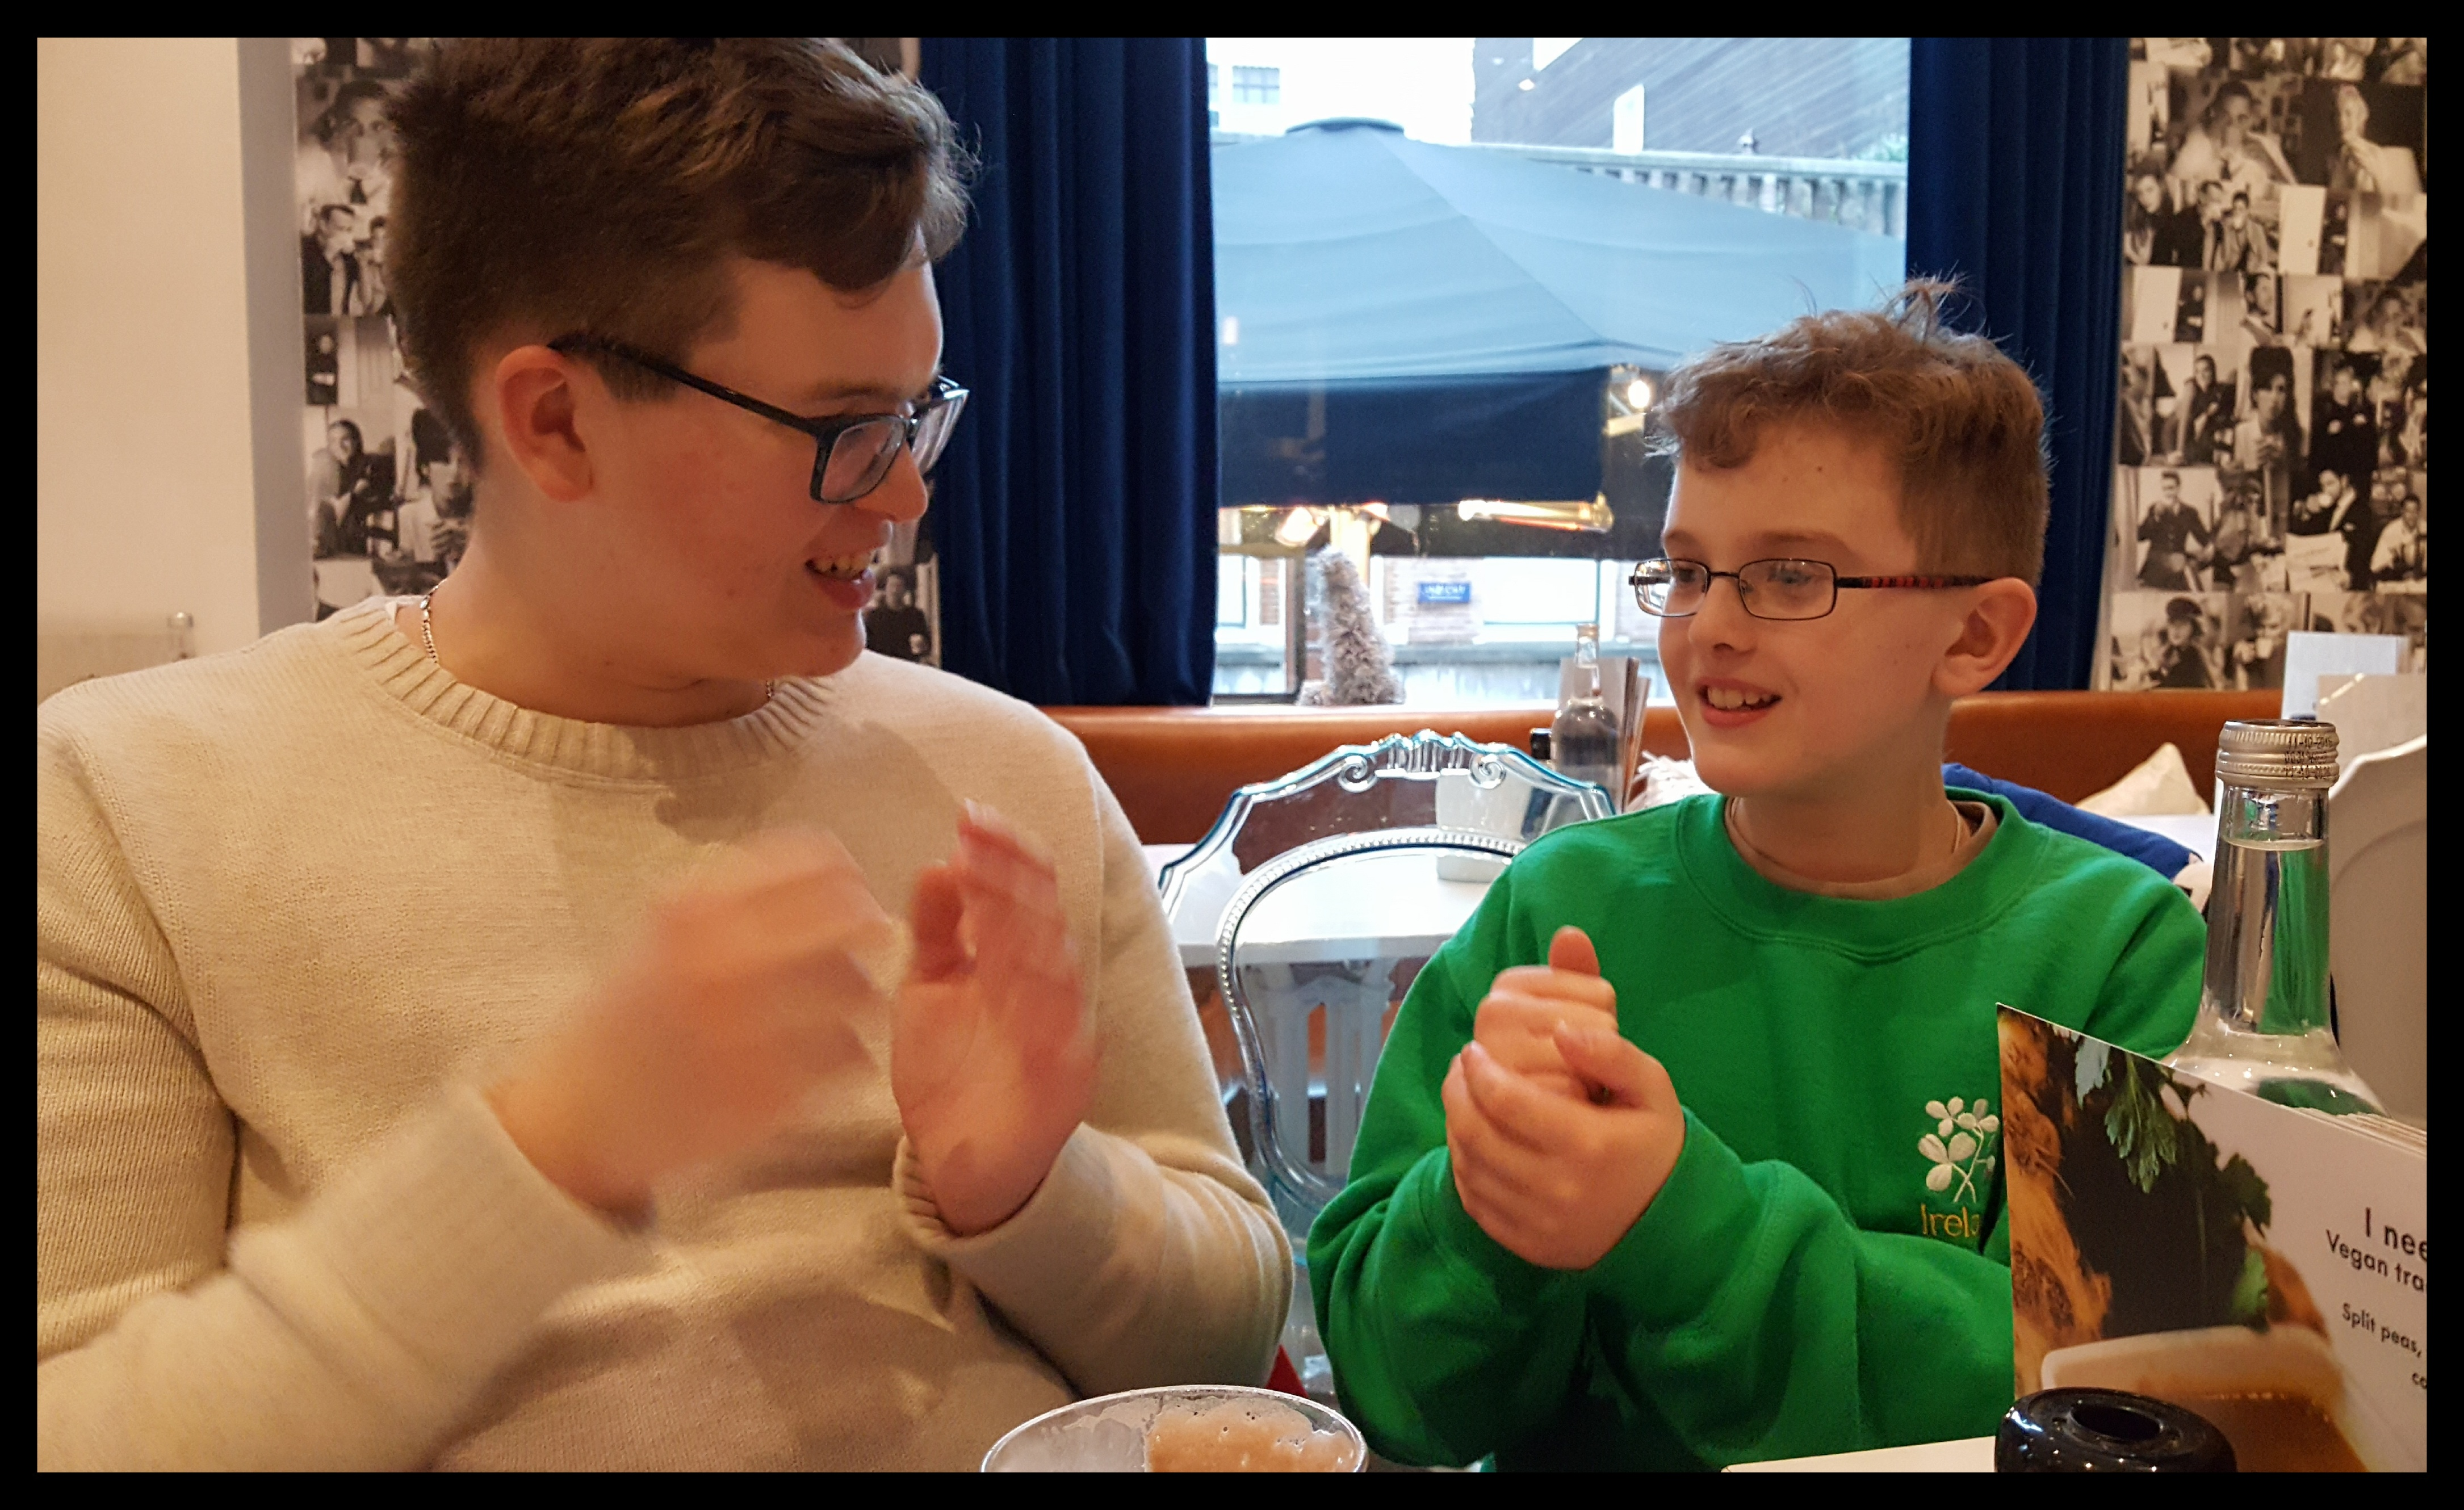 Nephews entertaining themselves in a cafe' with a rousing game of Rock, Paper, Scissors, Batman, Bunny Foo Foo. It's their own creation. Bunny Foo Foo trumps. Photo by Dragonfly Leathrum